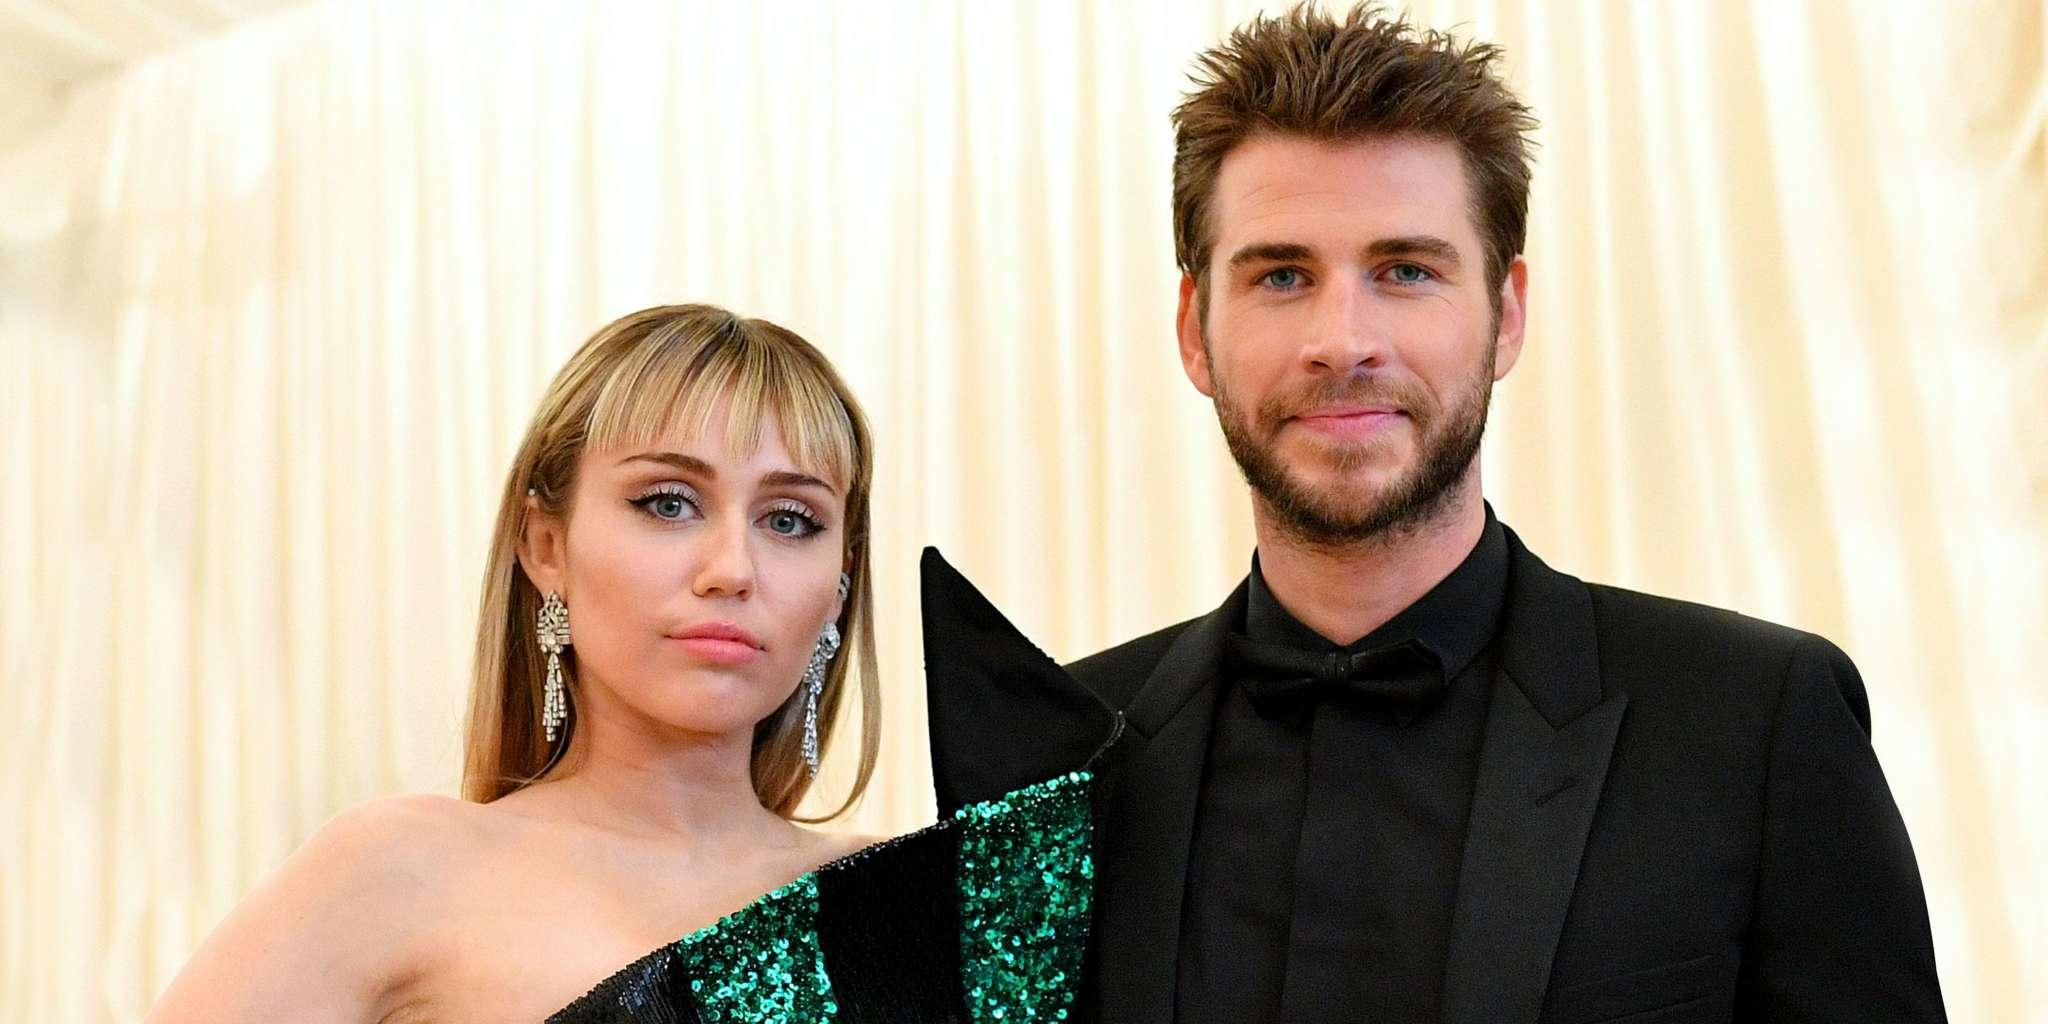 Miley Cyrus 'Not Paying Attention' To Liam Hemsworth's Brand New Romance With Maddison Brown After Their Divorce - Here's Why!